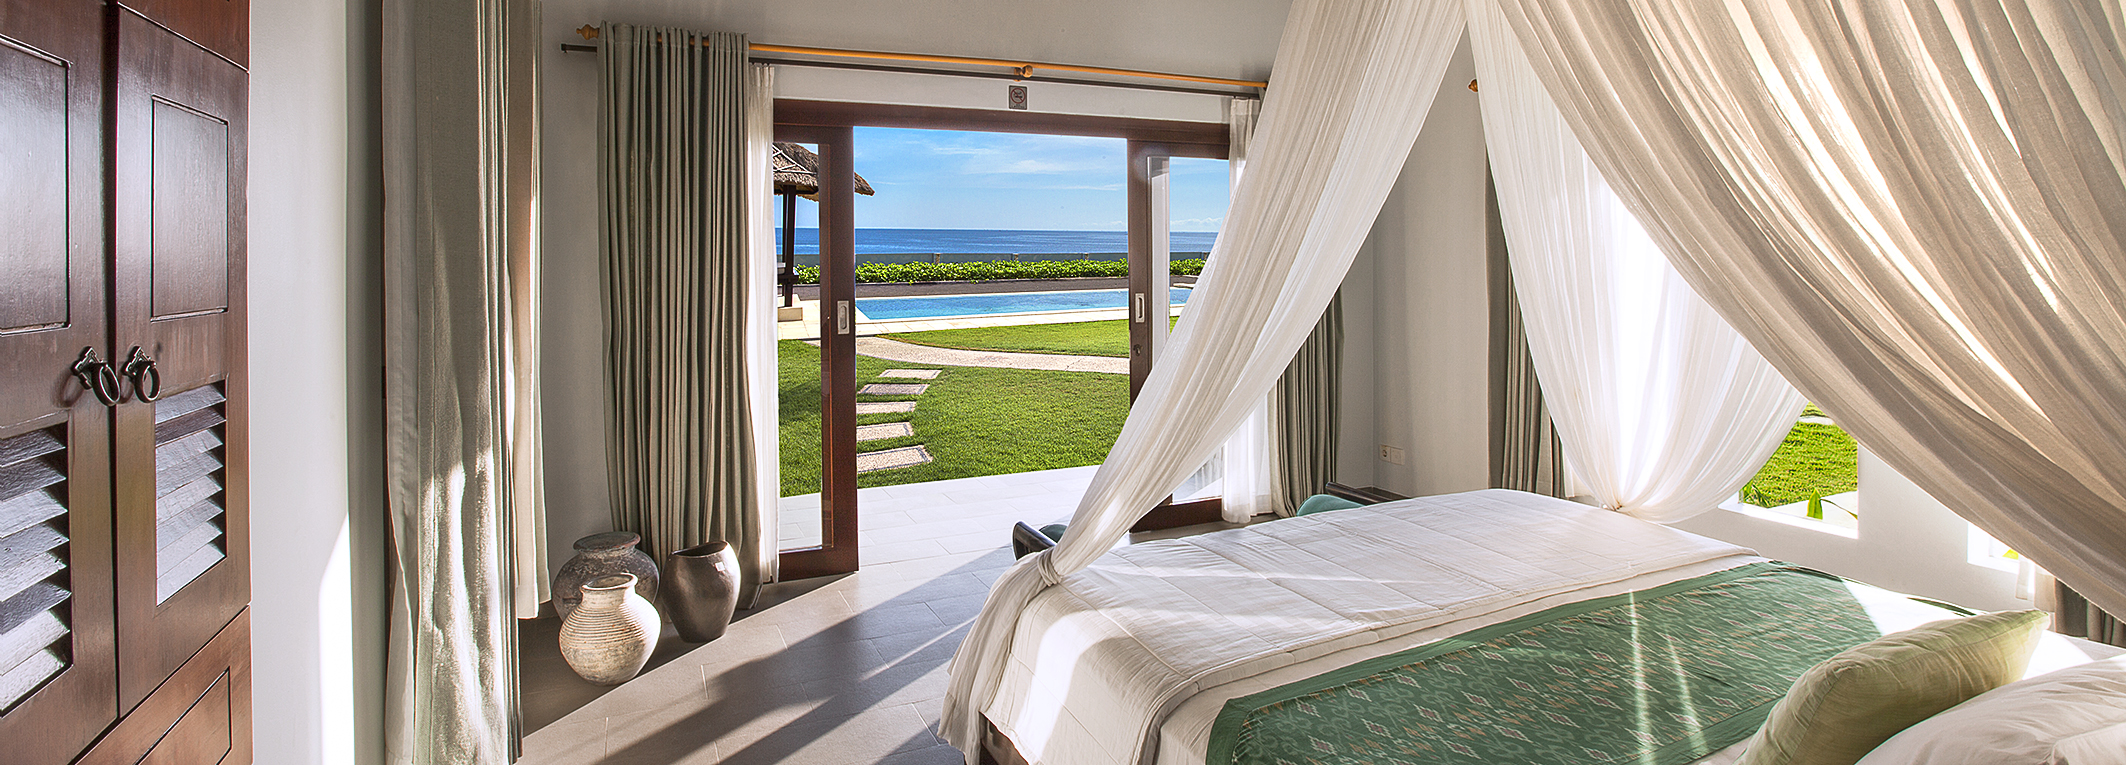 Ashling Villa Bedroom